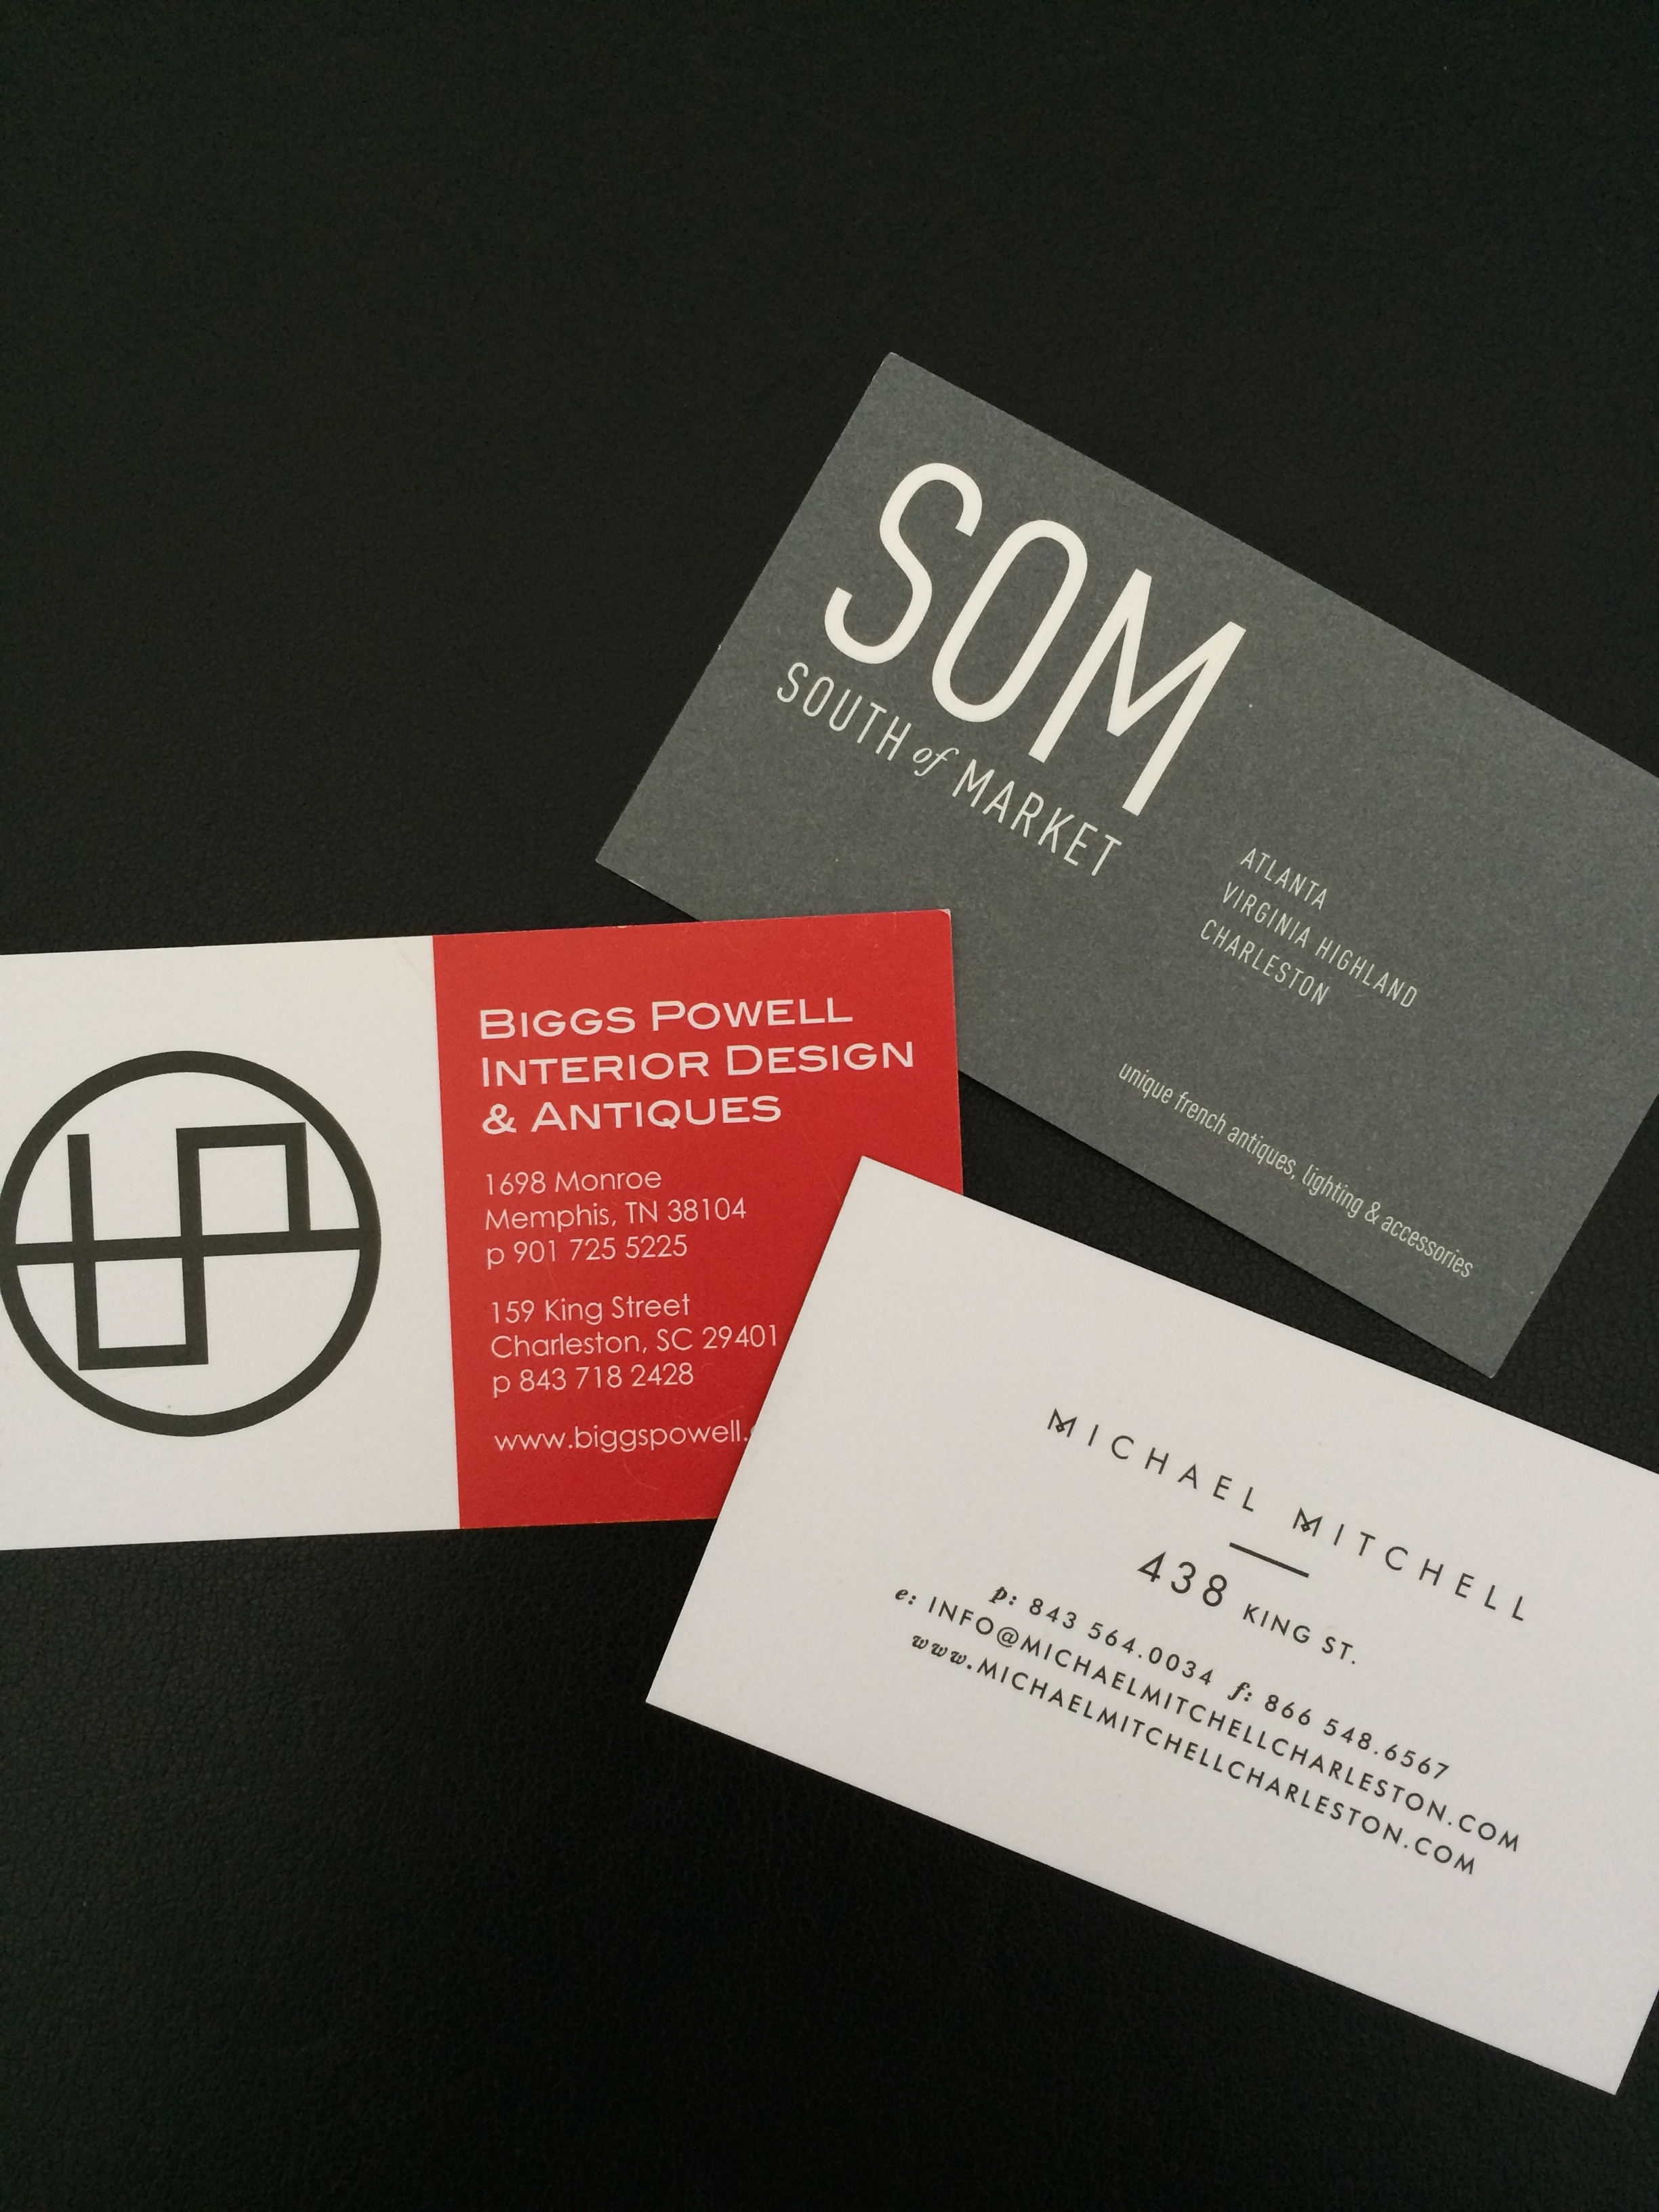 Awesome Photograph Of Business Cards Charleston Sc - Business ...